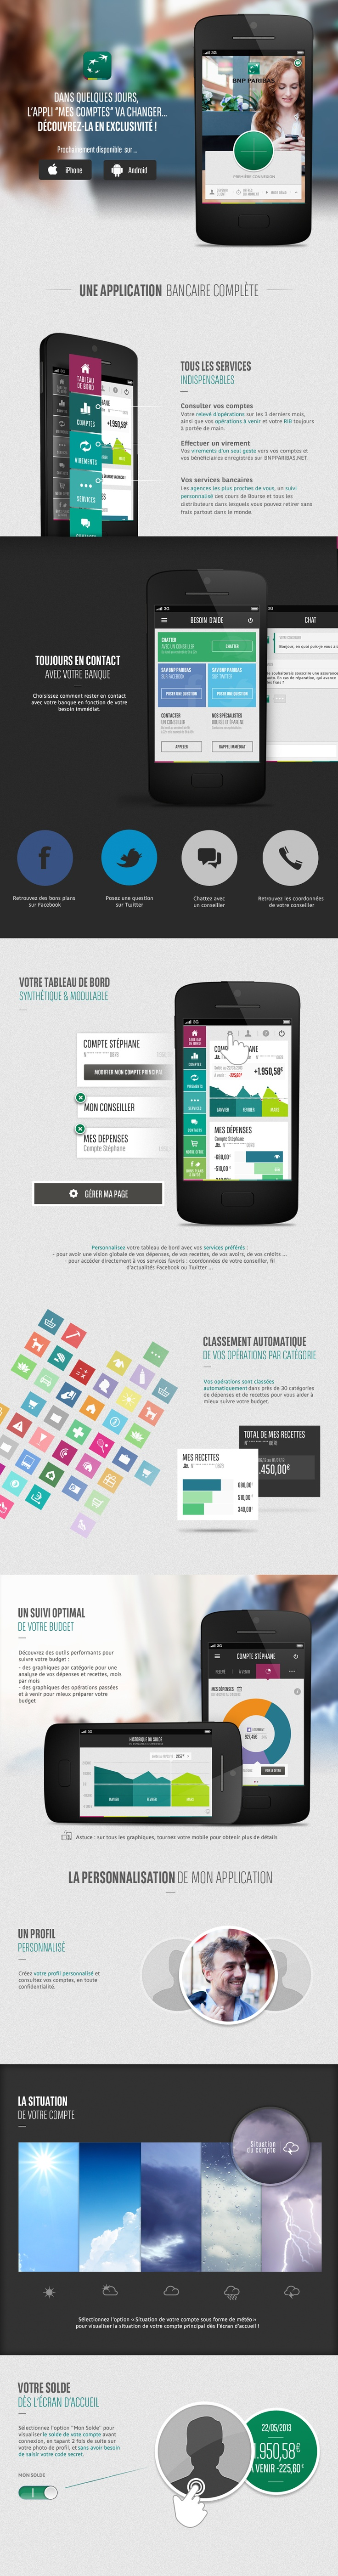 #mobile #app #ui #digital